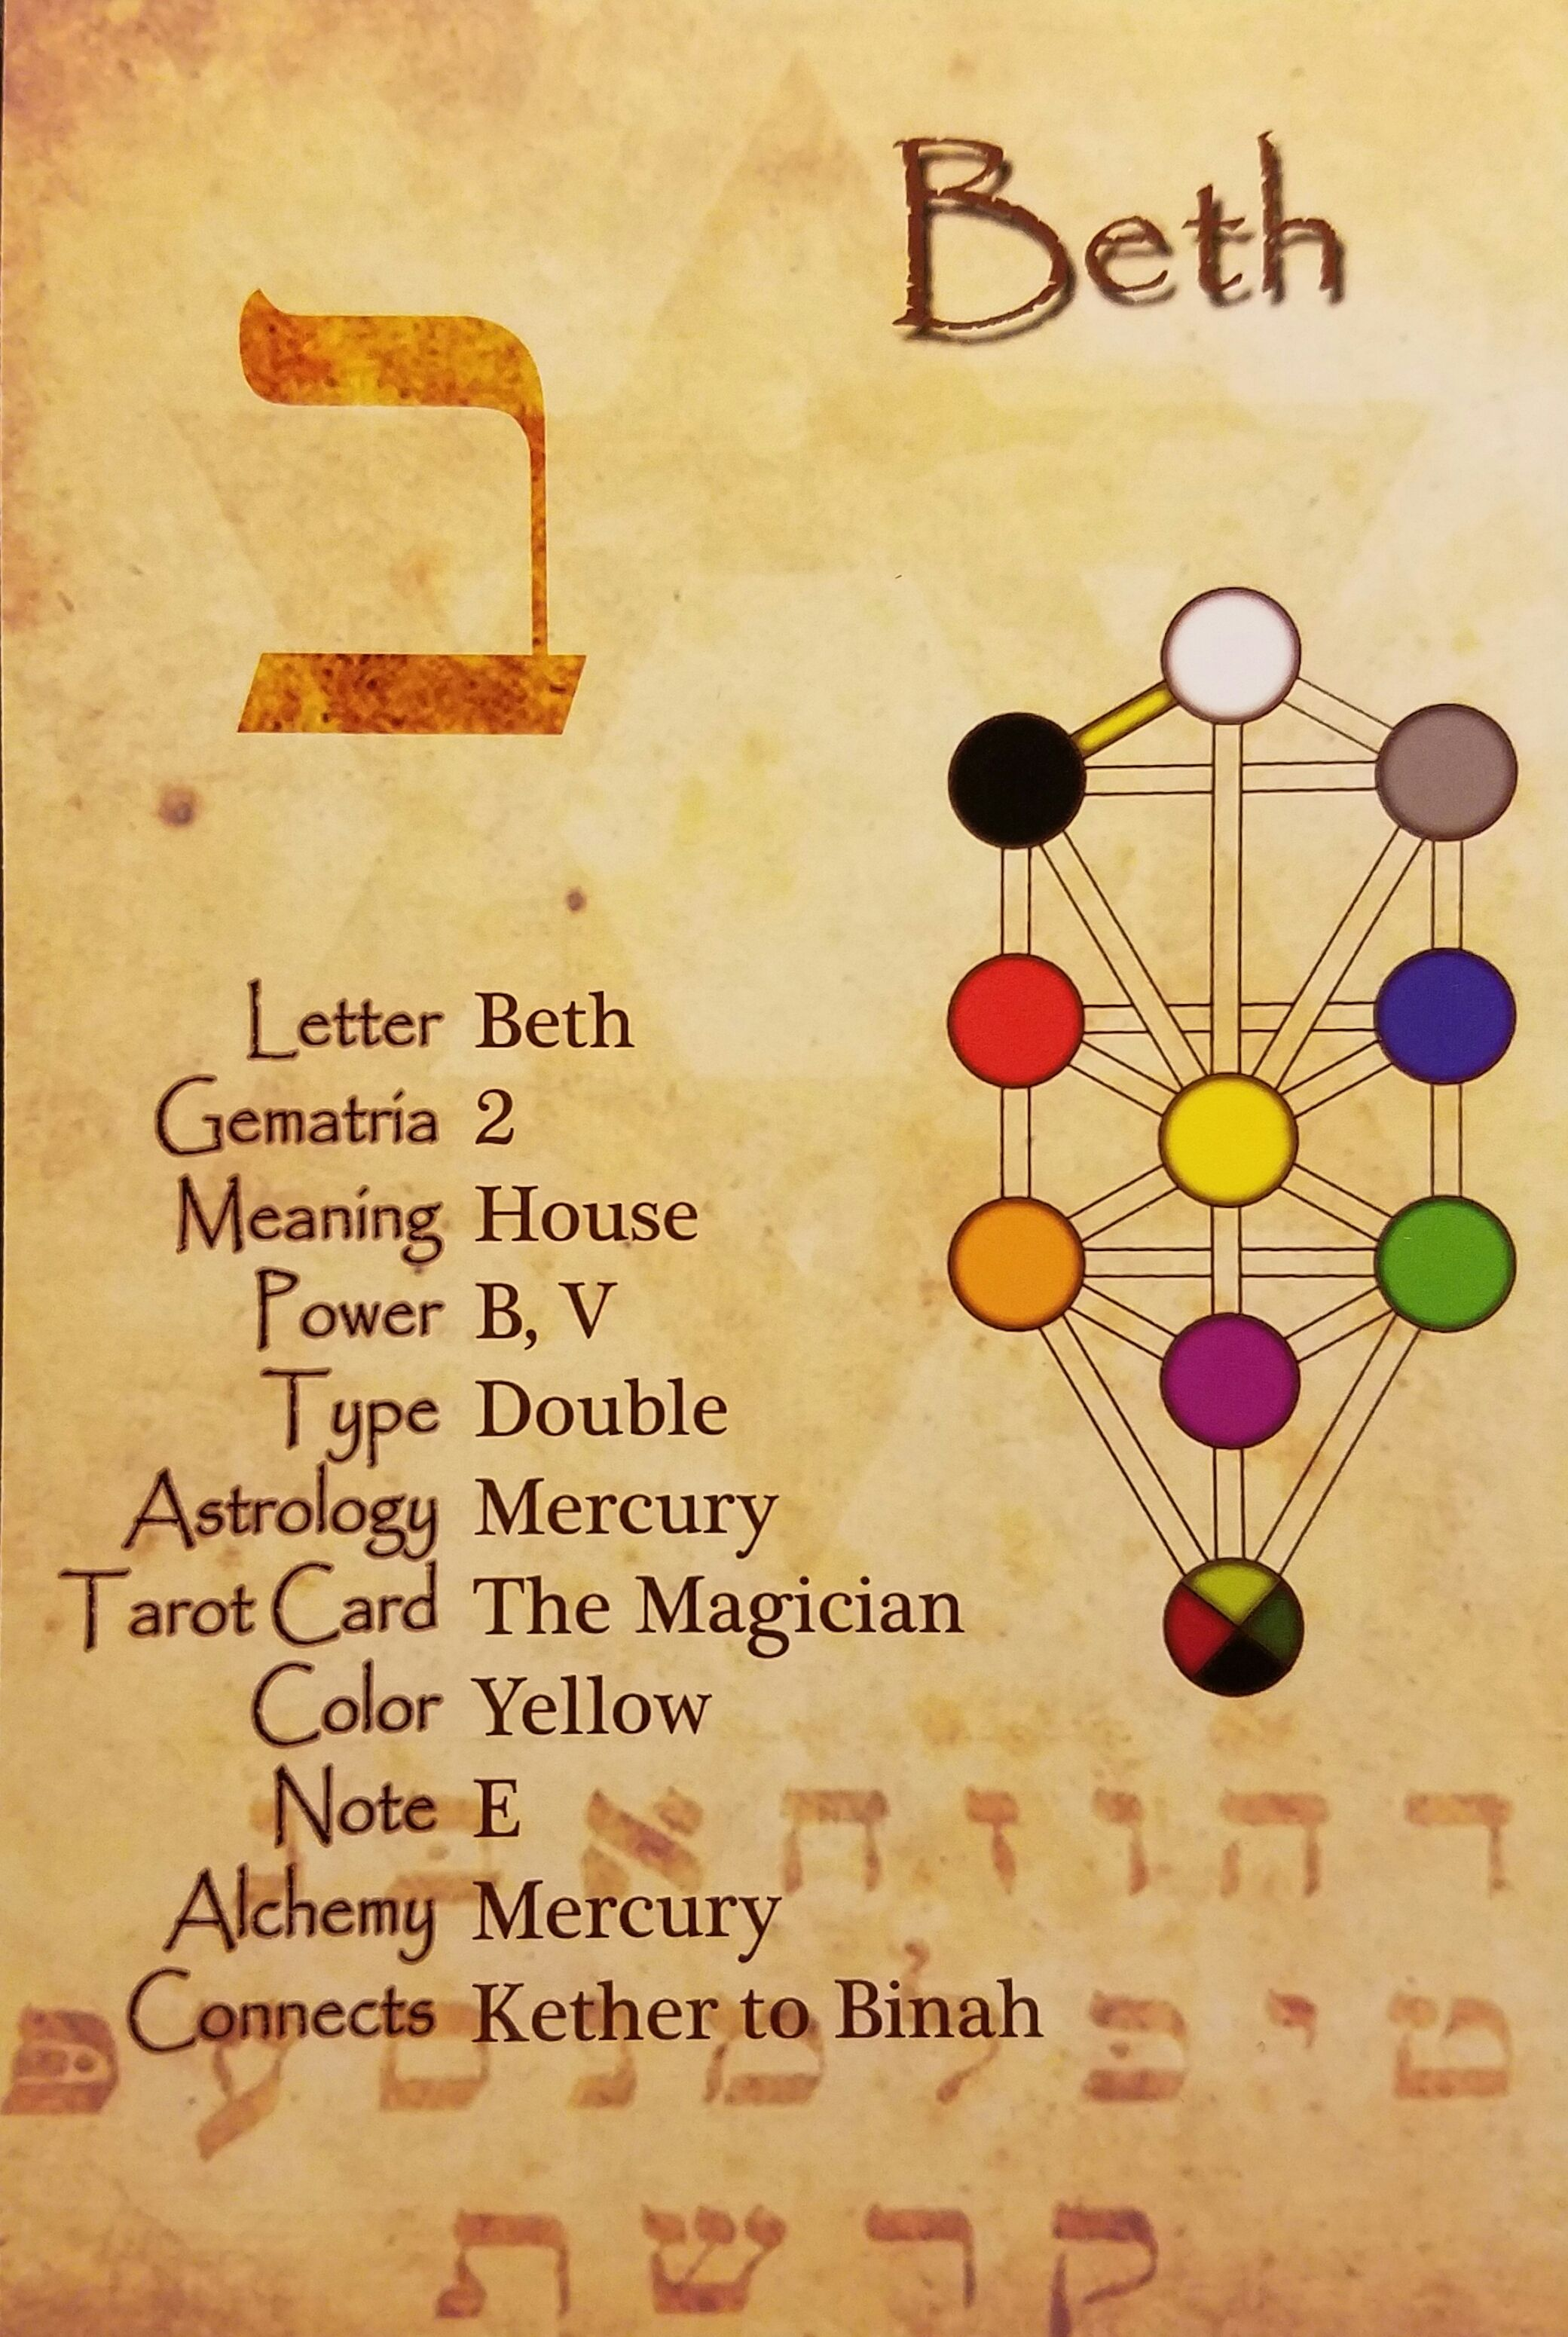 Beth - Hebrew Letter Study Card | Golden Dawn in 2019